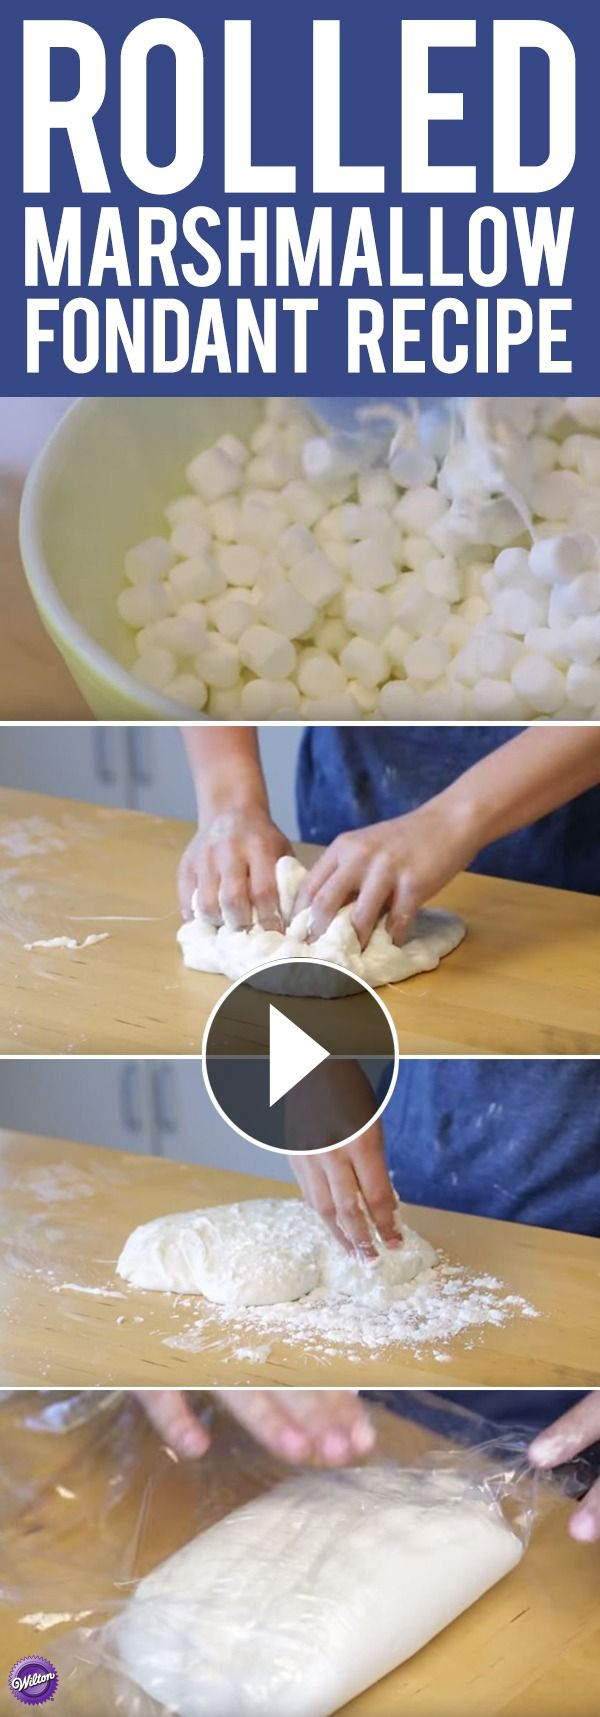 How To Put Fondant On A Round Cake Site Youtube